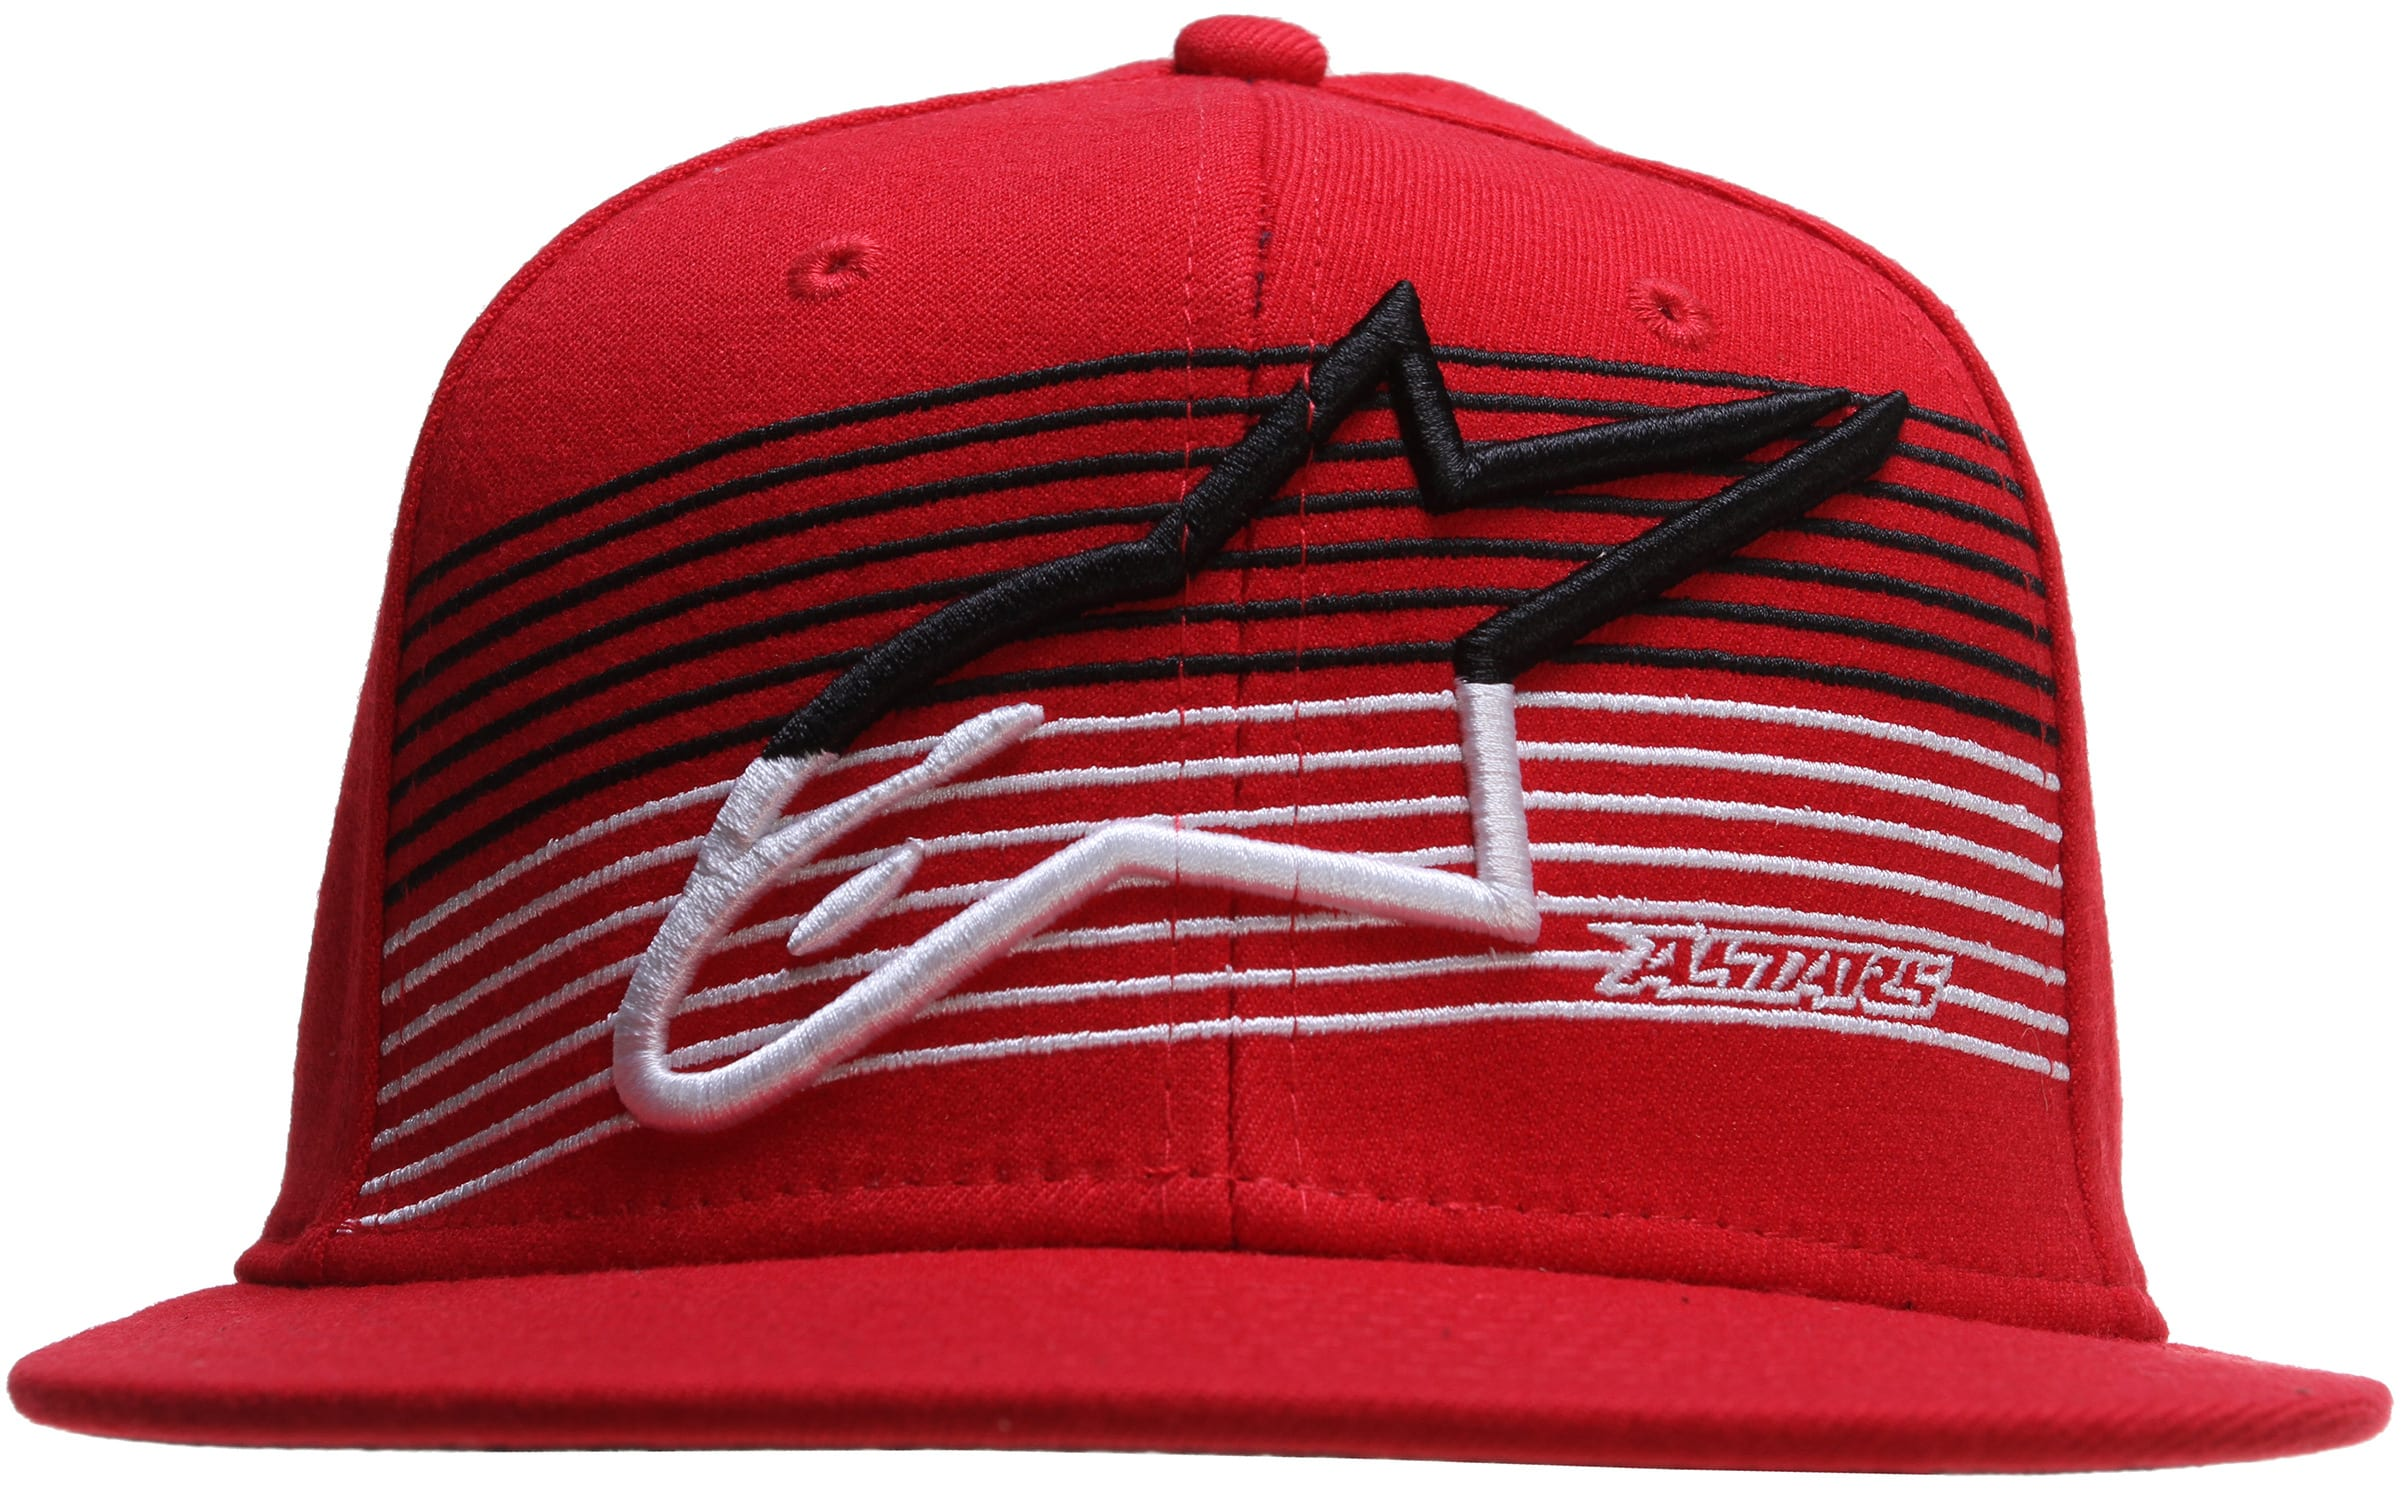 Alpinestars Underlined Flatbill Cap at8unlf24re14zz-alpinestars-caps